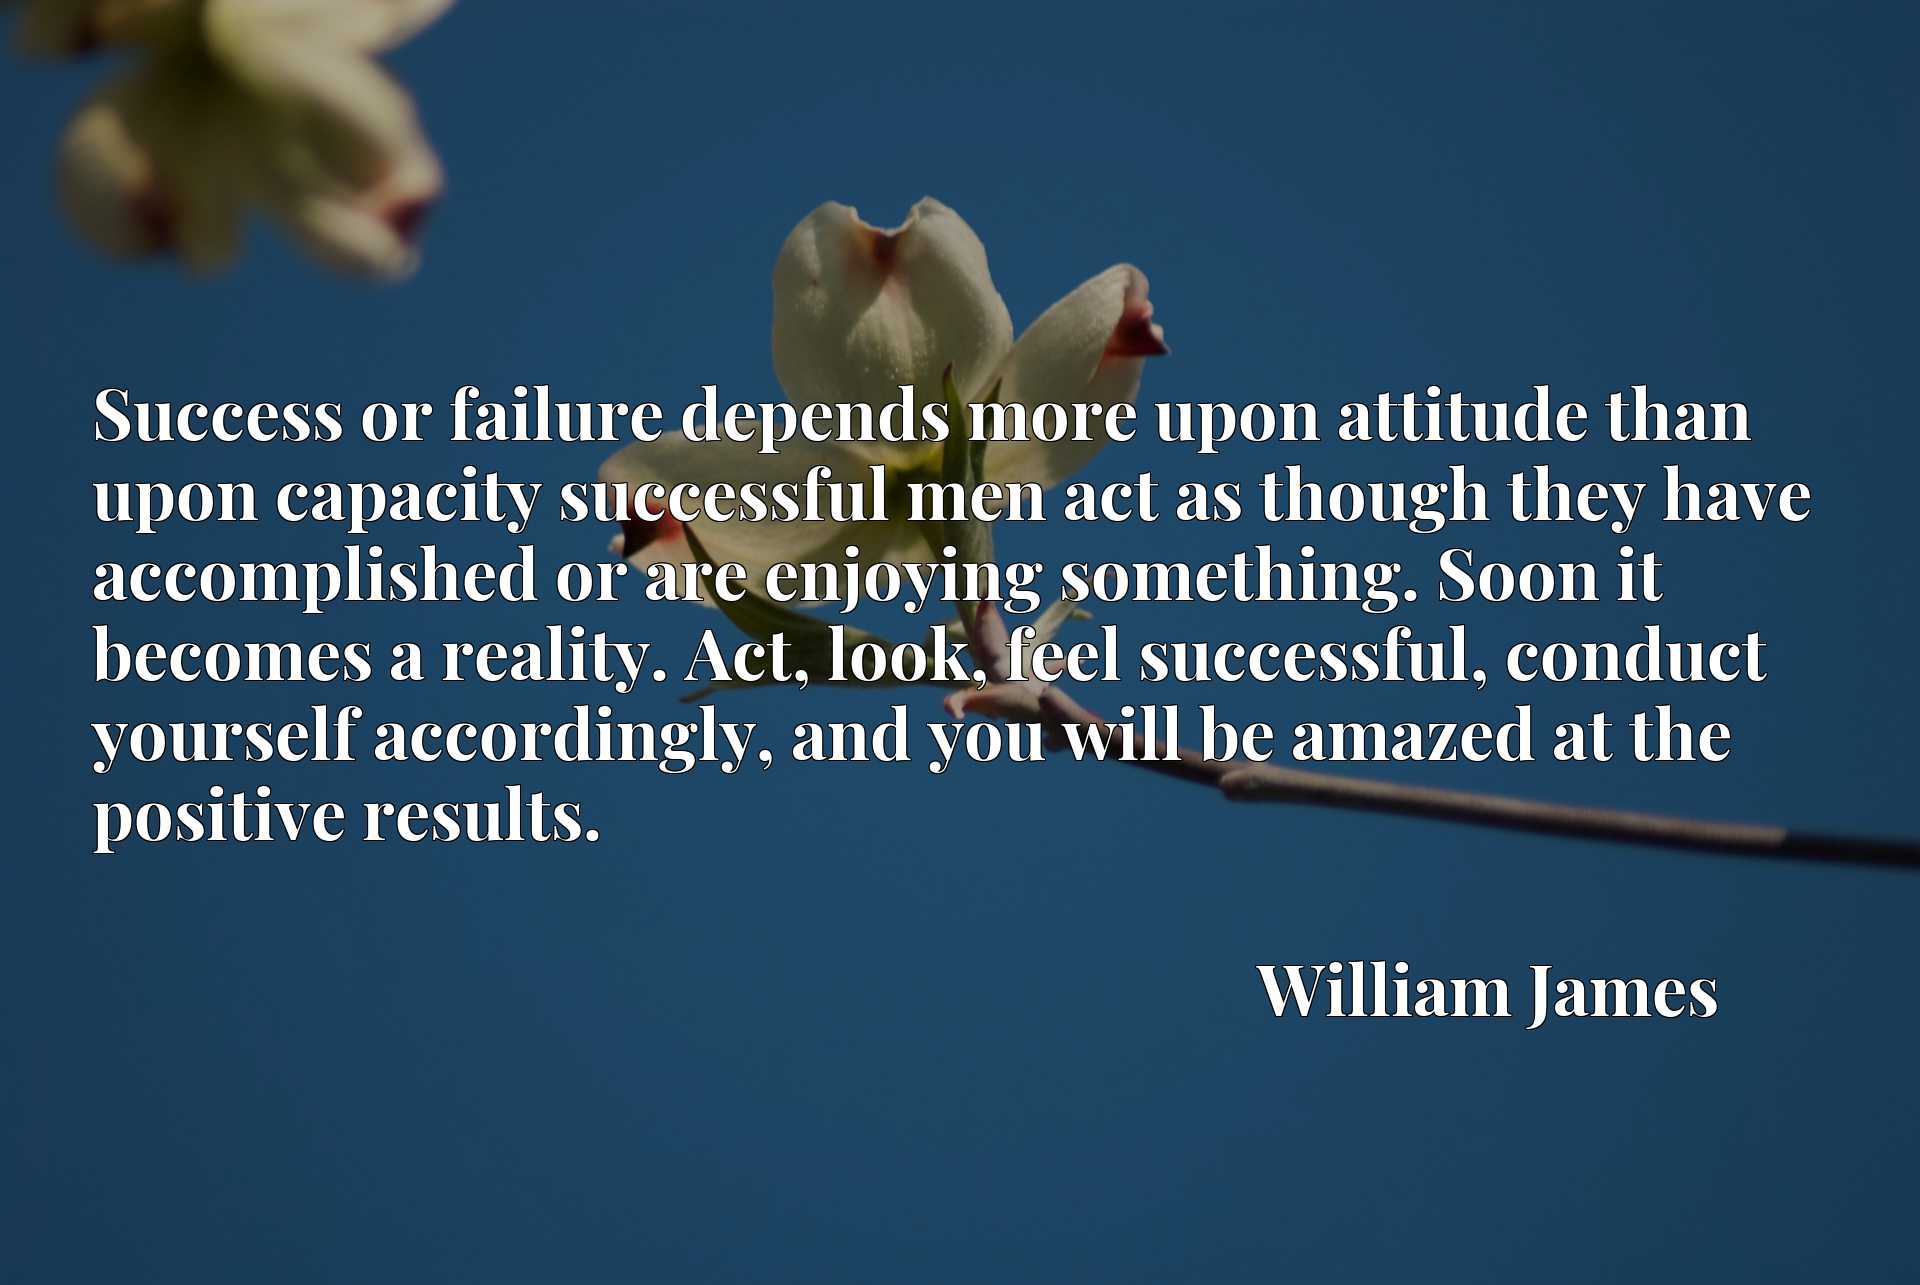 Quote Picture :Success or failure depends more upon attitude than upon capacity successful men act as though they have accomplished or are enjoying something. Soon it becomes a reality. Act, look, feel successful, conduct yourself accordingly, and you will be amazed at the positive results.